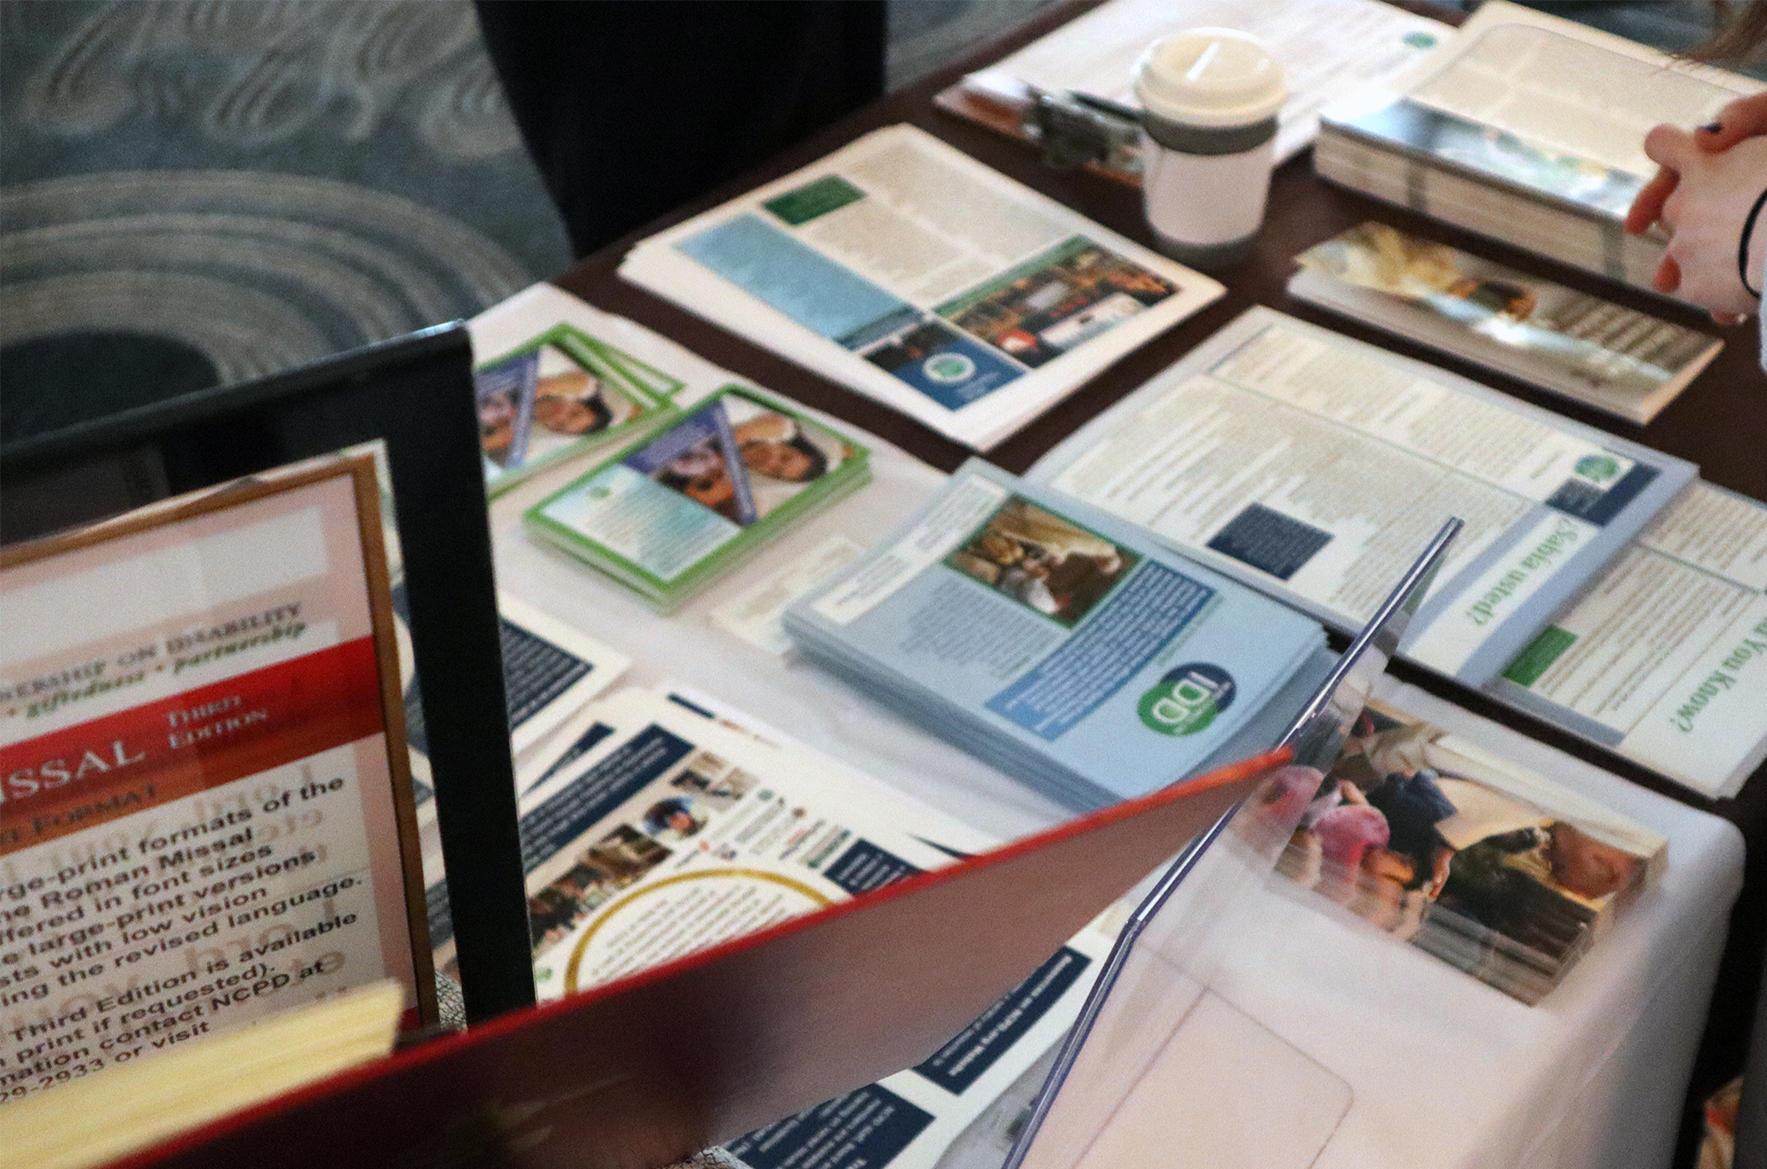 NCPD Exhibit table